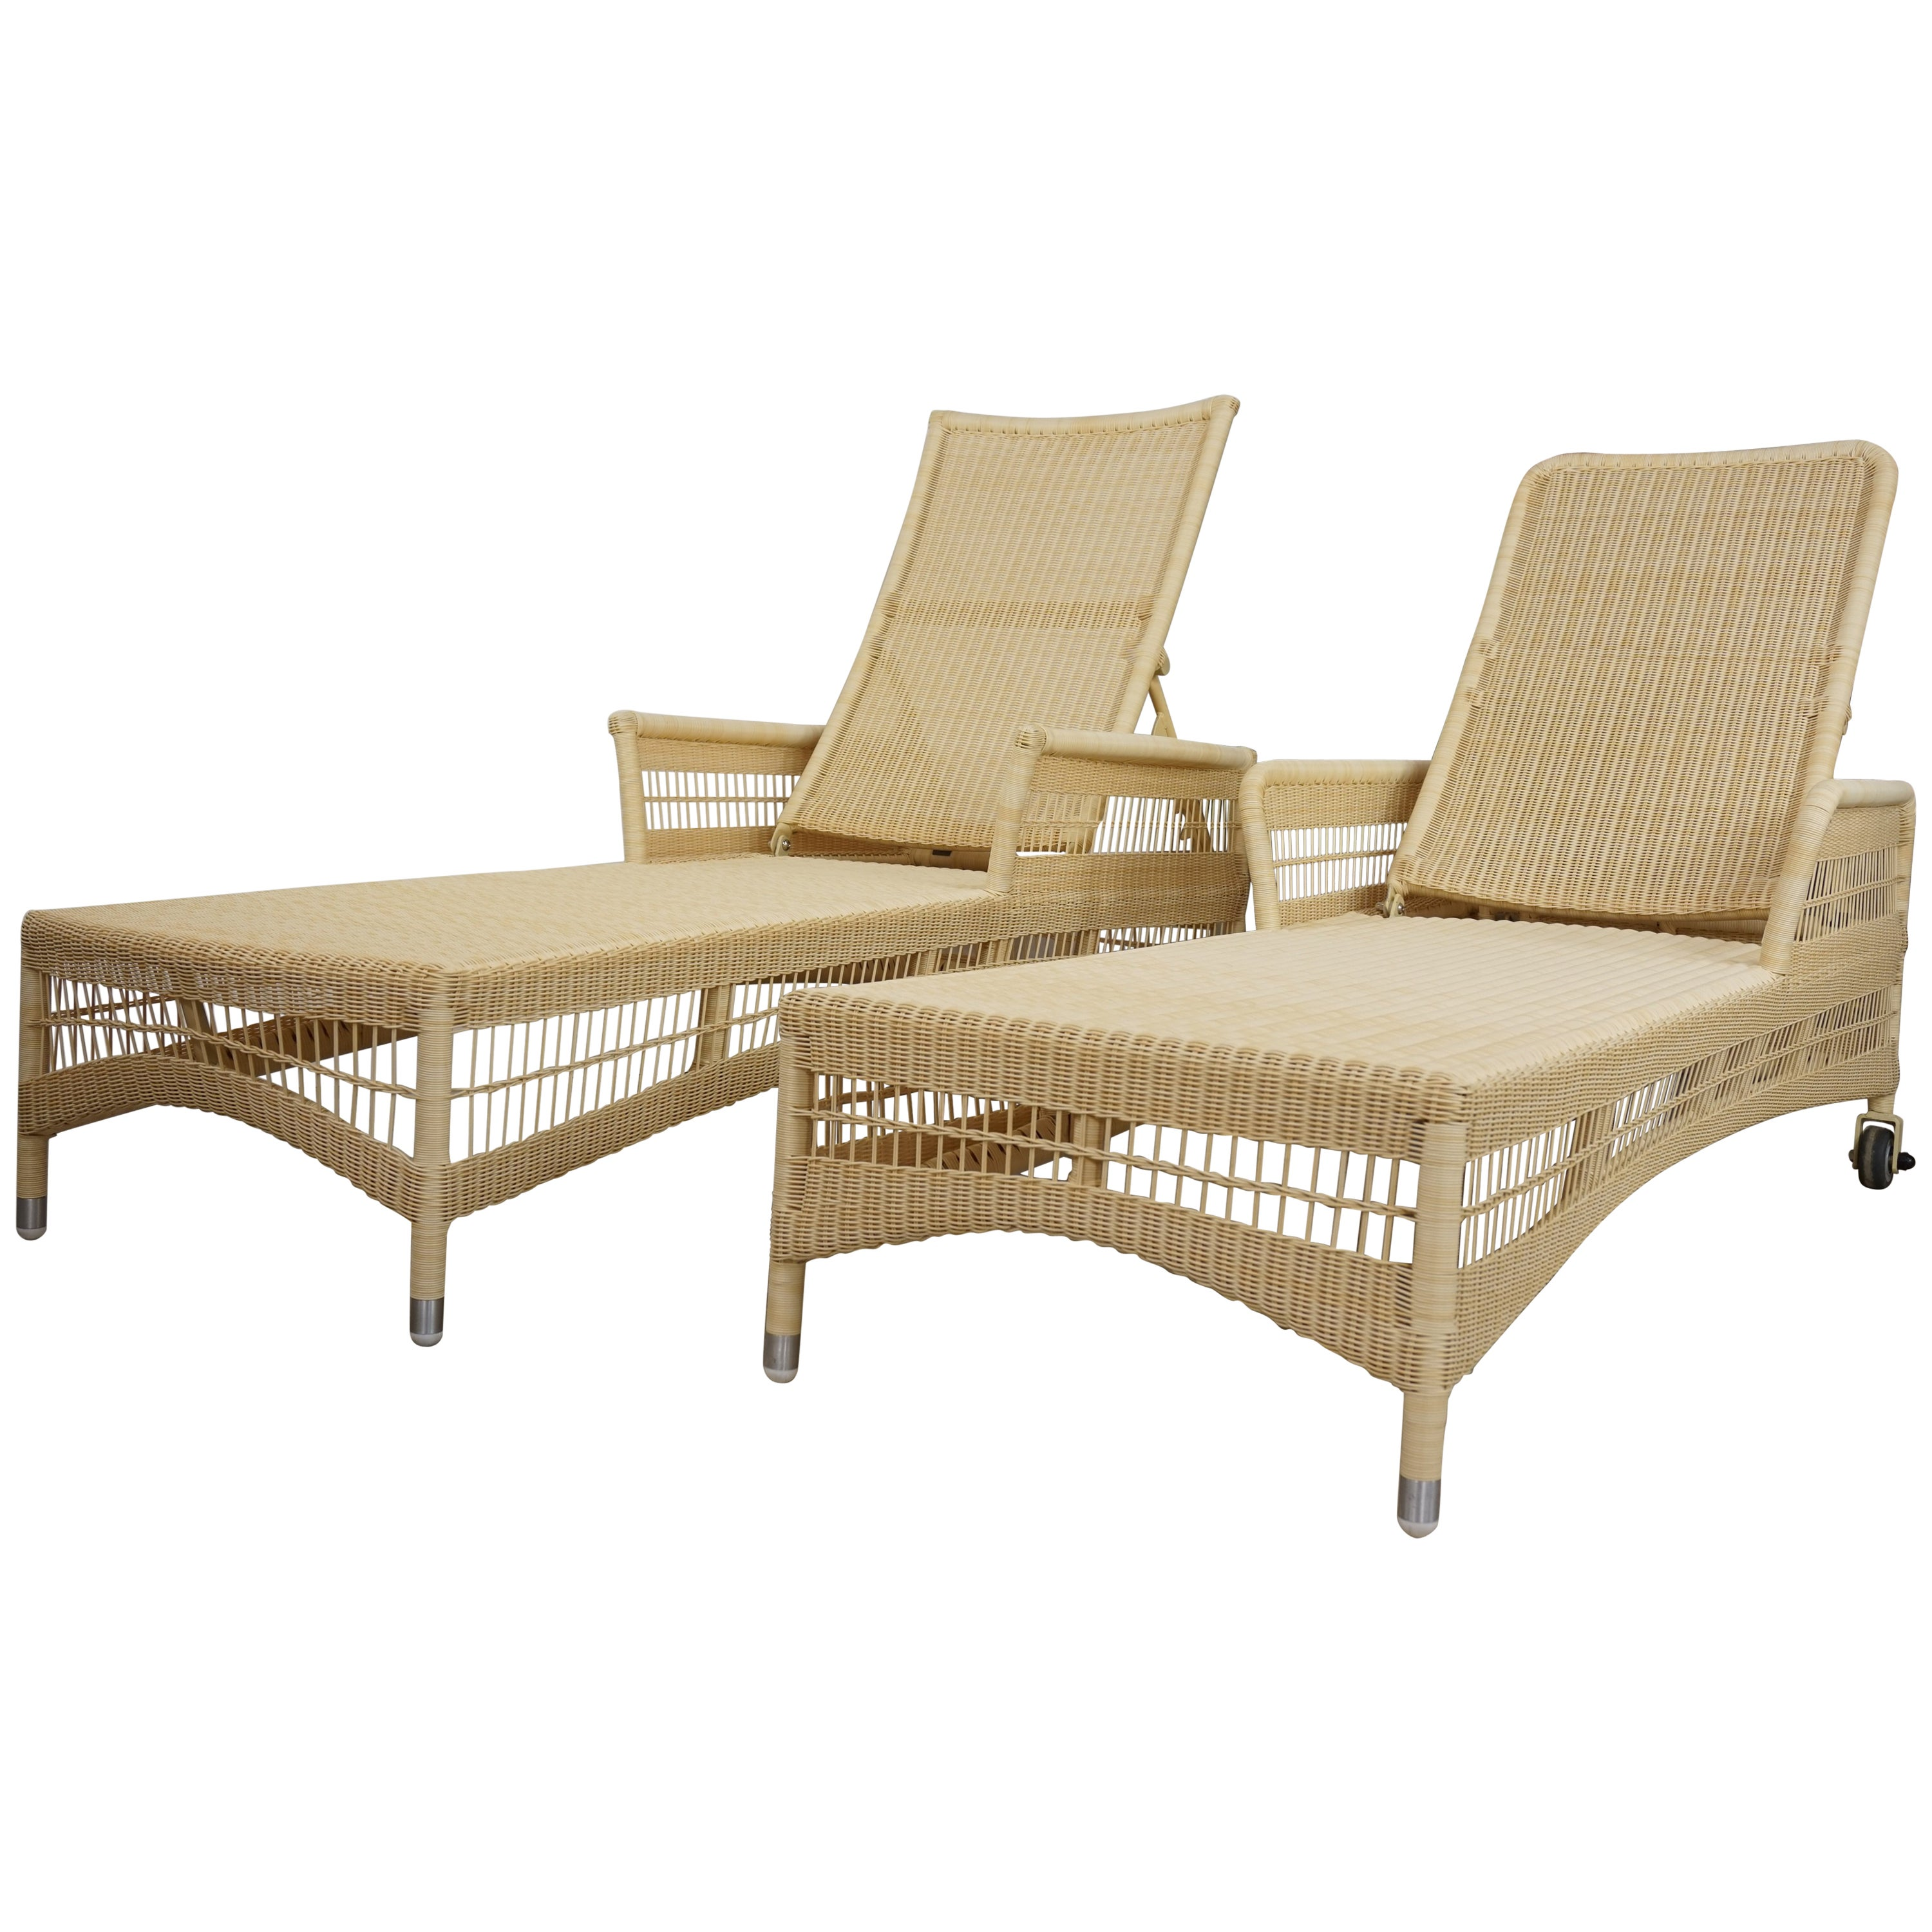 Chaises Longues Loom Lloyd Resin Pair Of Outdoor Chaises Longues Relax And Recliner